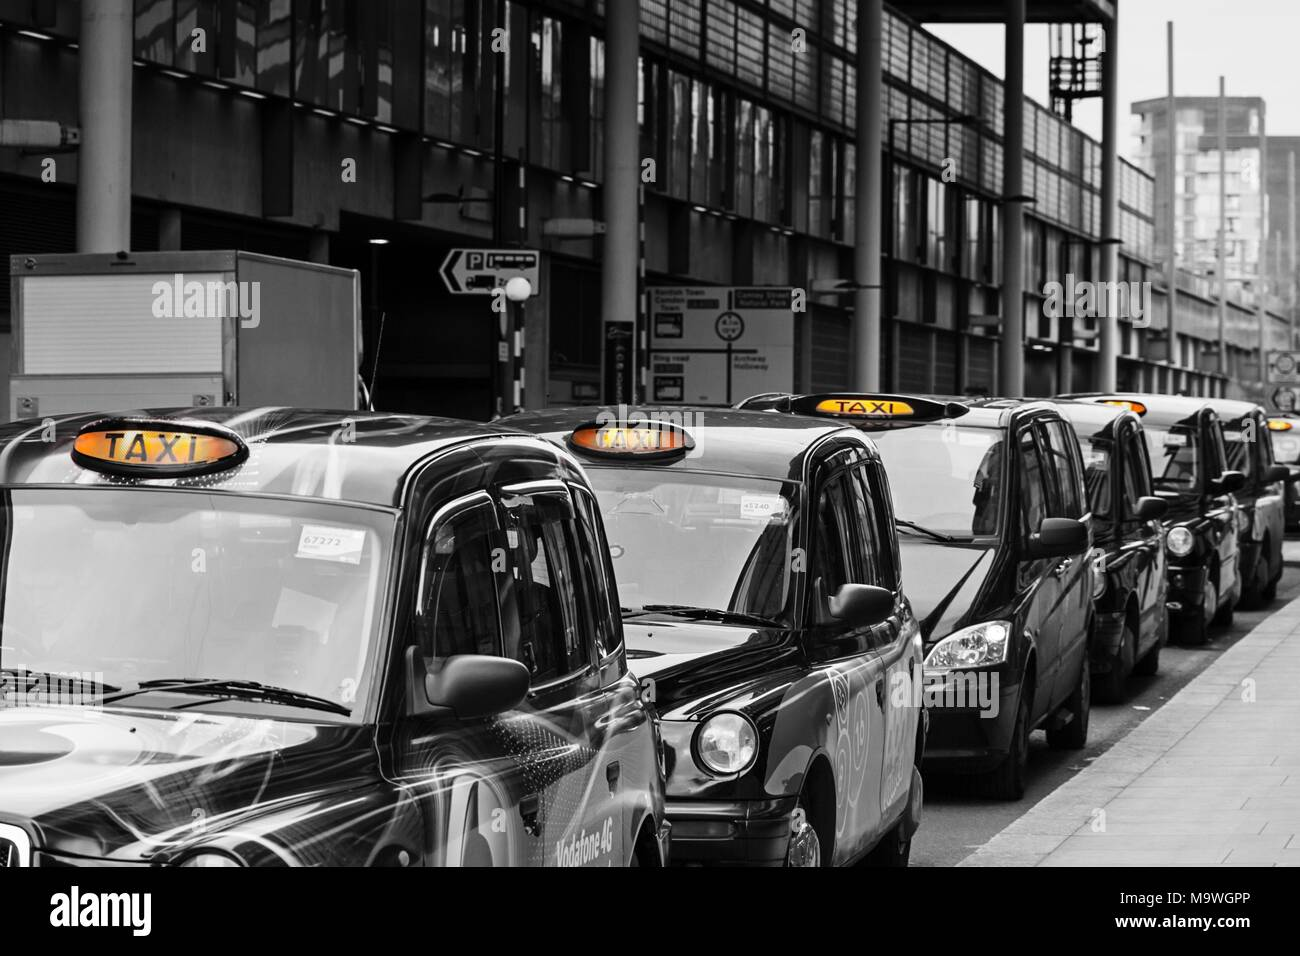 A row of London black taxi cabs waiting for a fare at a taxi rank outside Kings Cross station, London, England with for hire light illuminated. - Stock Image